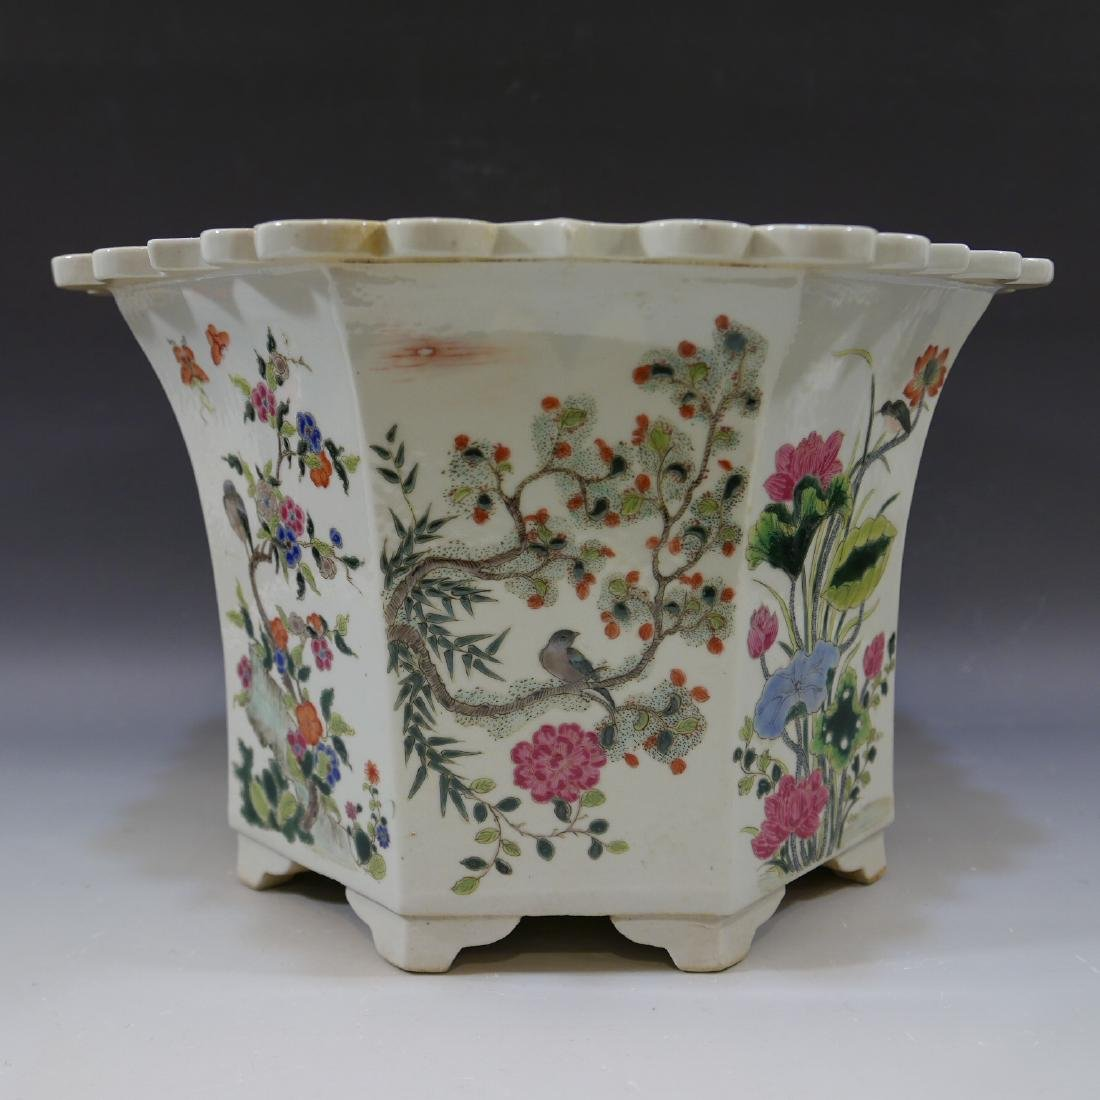 ANTIQUE CHINESE FAMILLE ROSE PORCELAIN JARDINIERE. 19TH